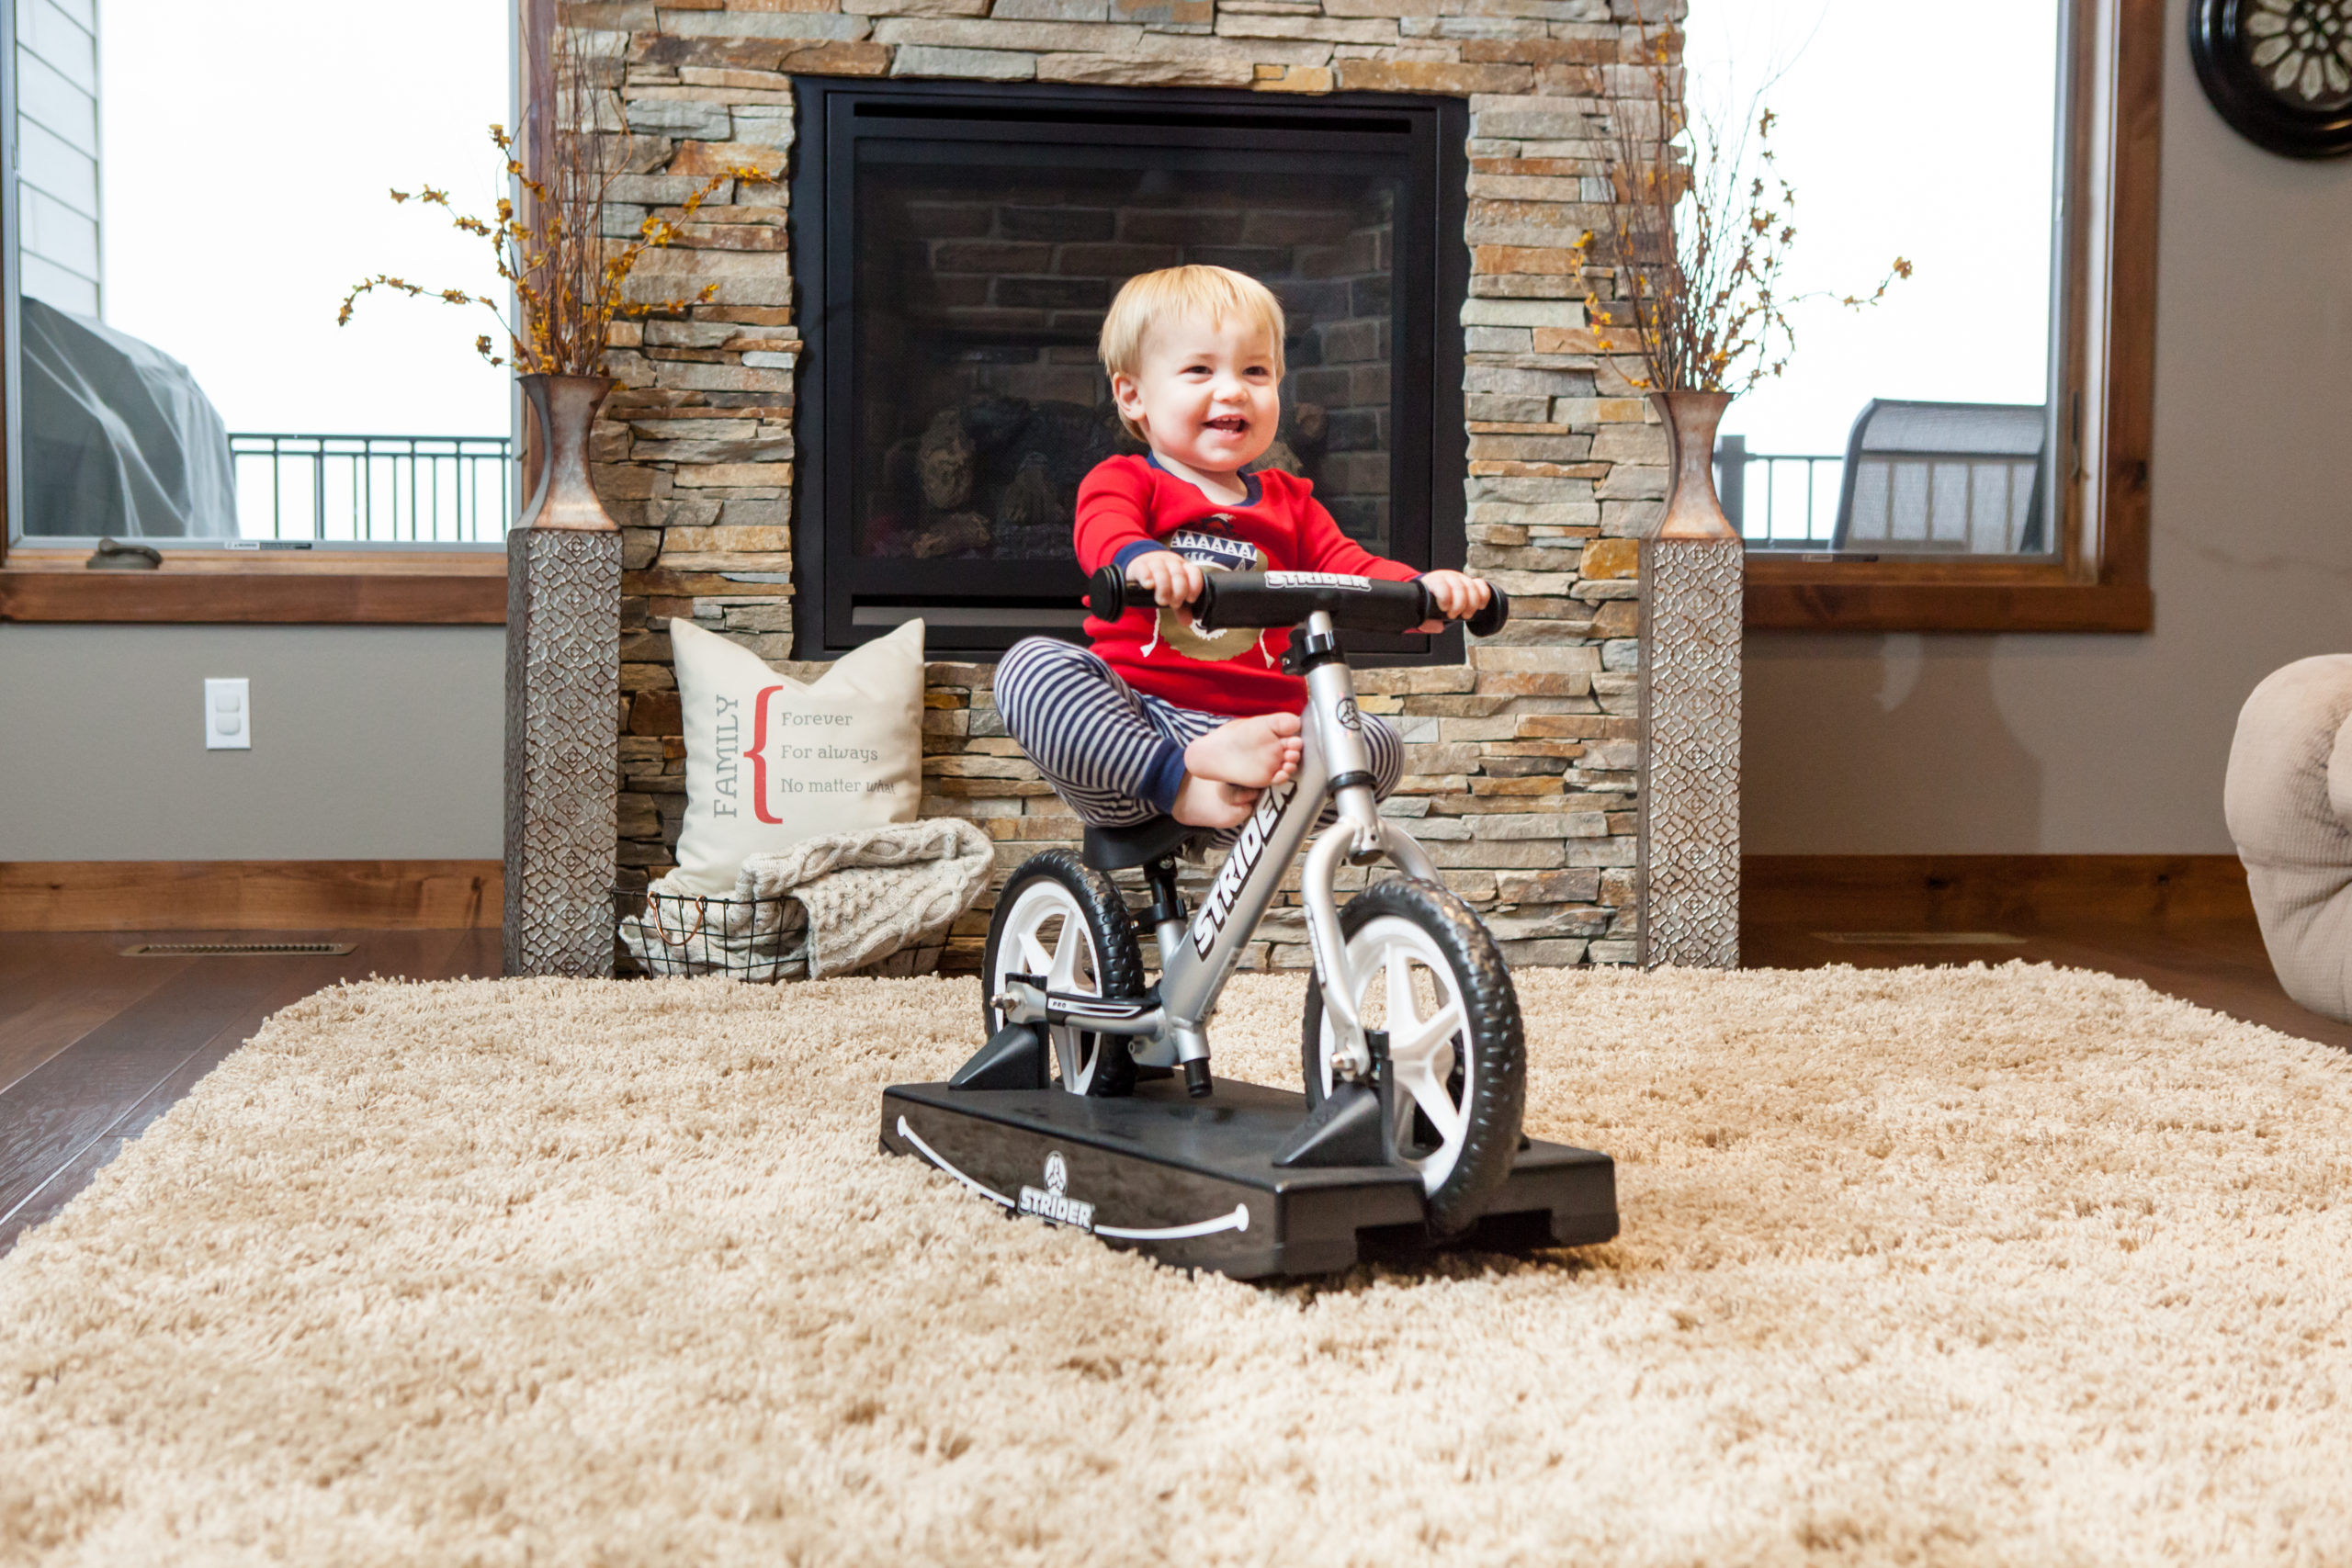 Little baby smiling with feet up on 12 Pro 2-in-1 Rocking Bike